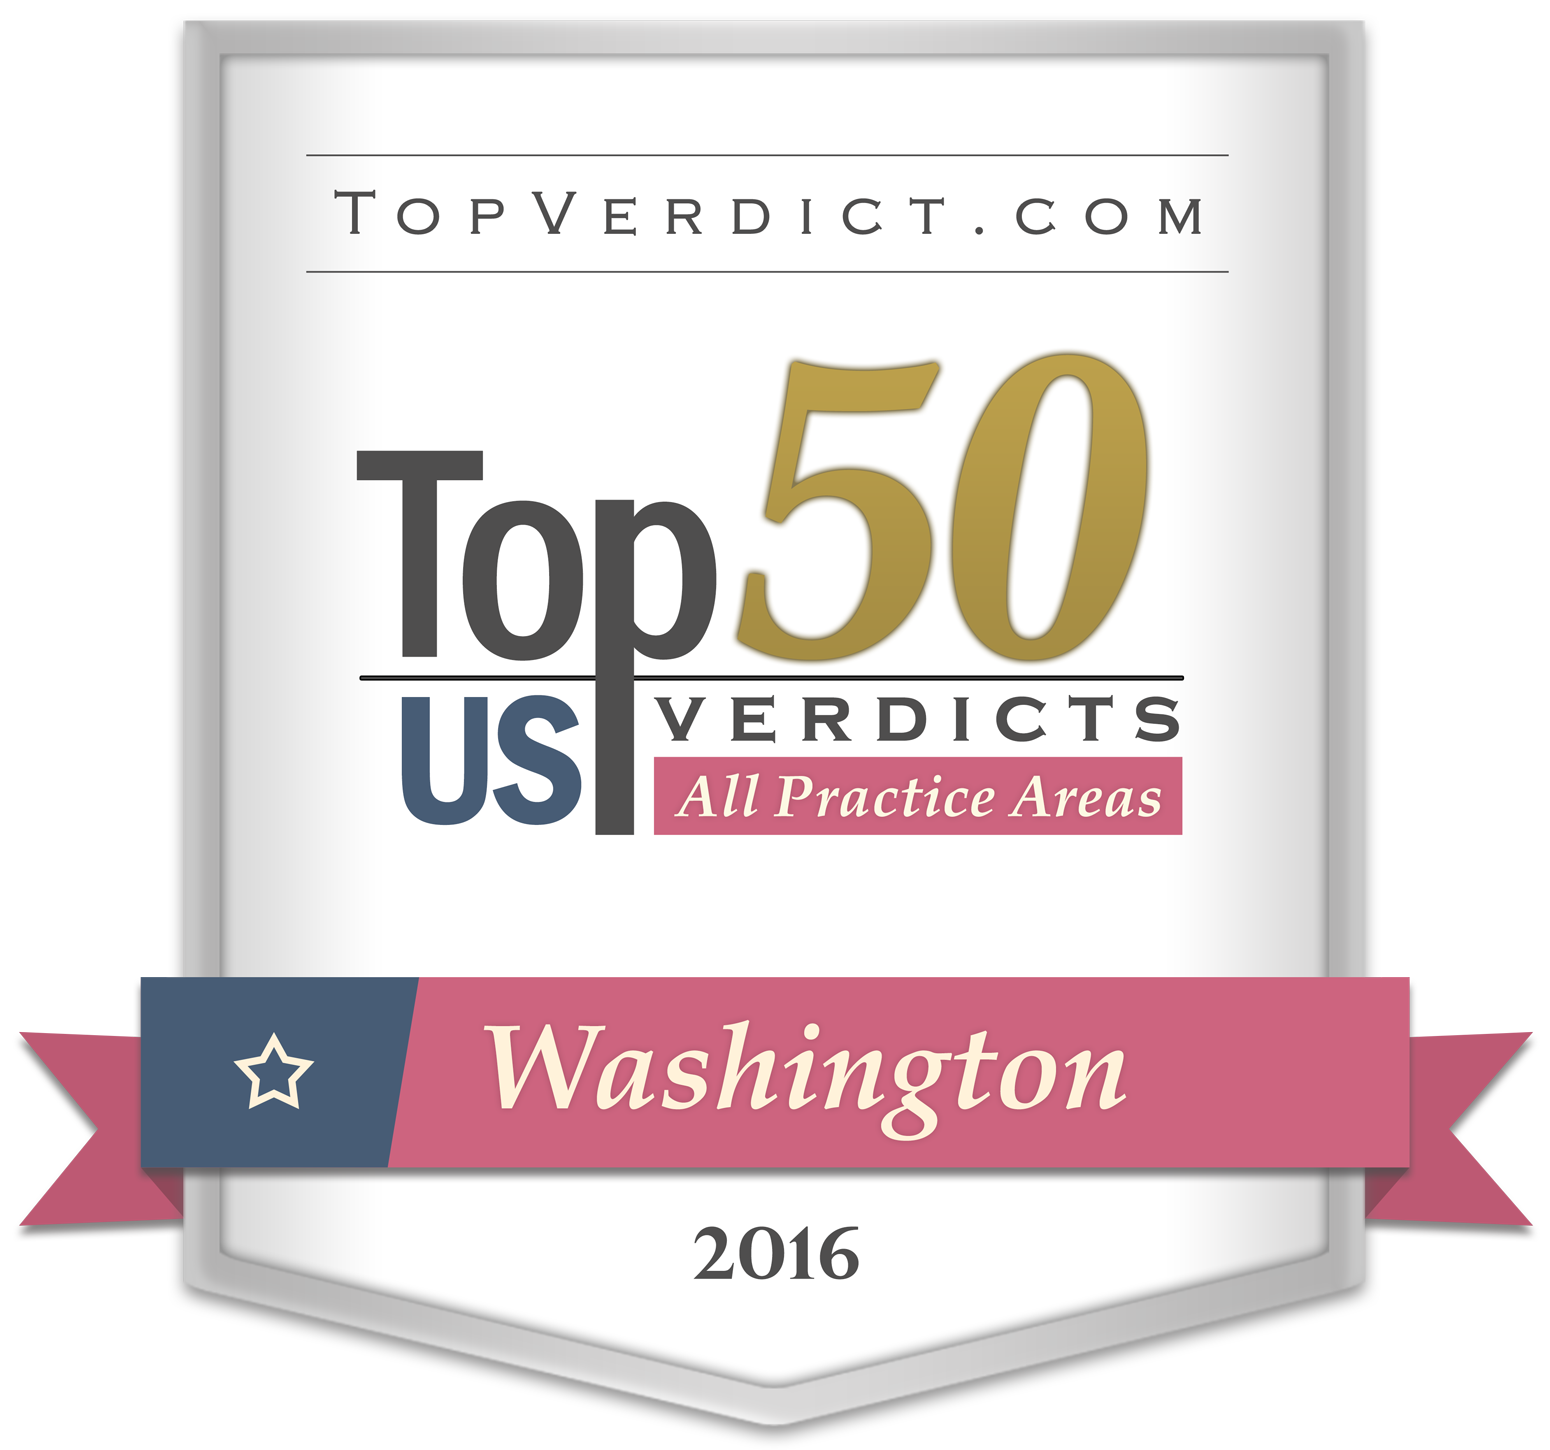 Top verdicts in the United States